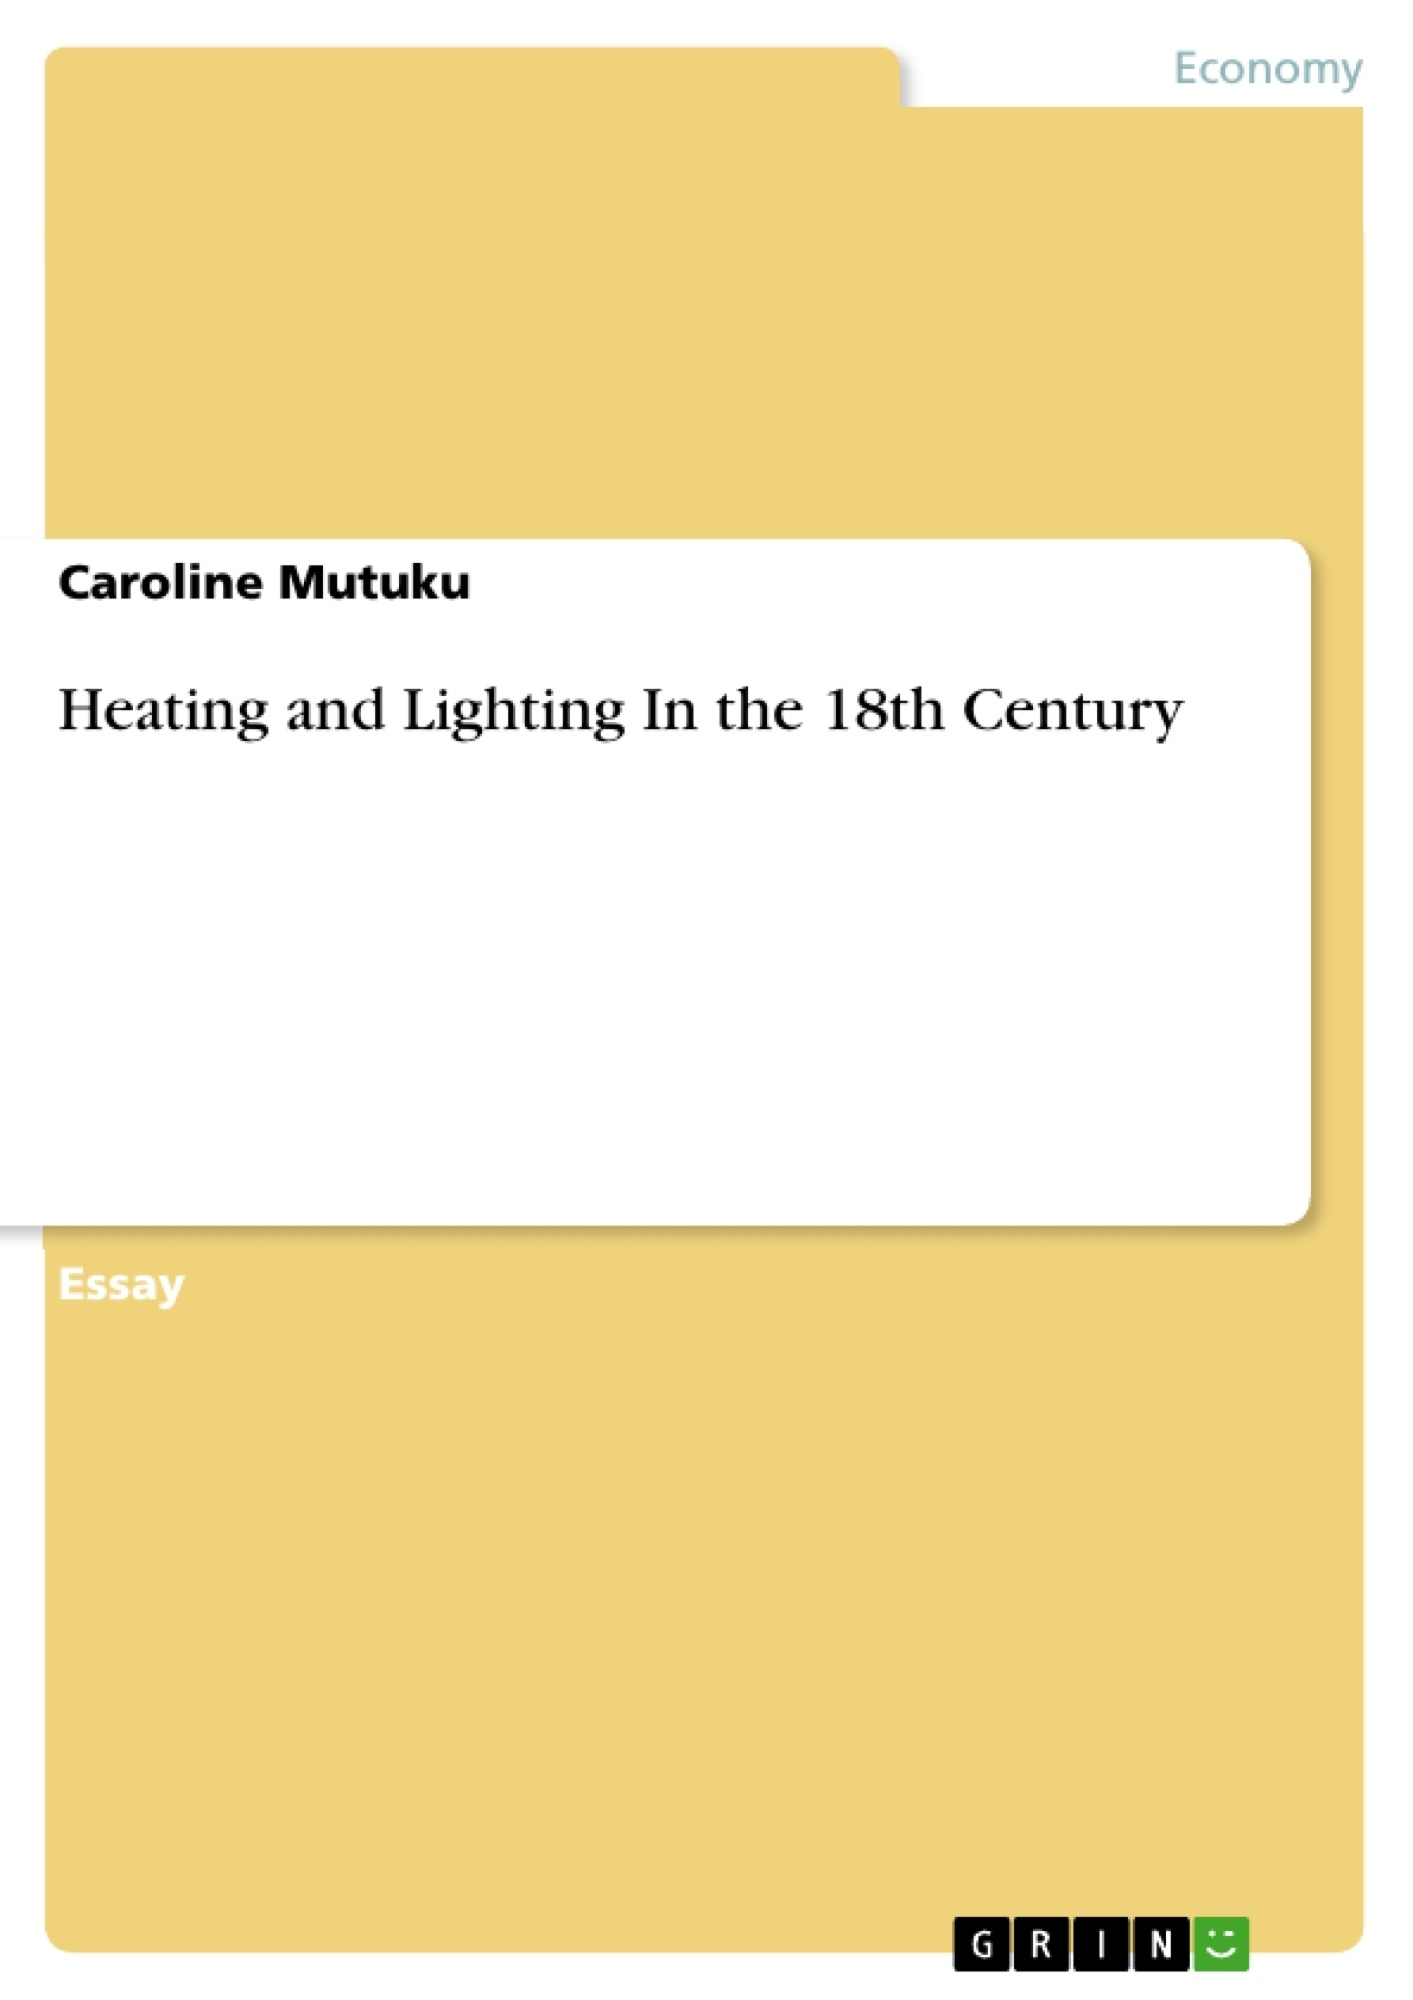 Title: Heating and Lighting In the 18th Century